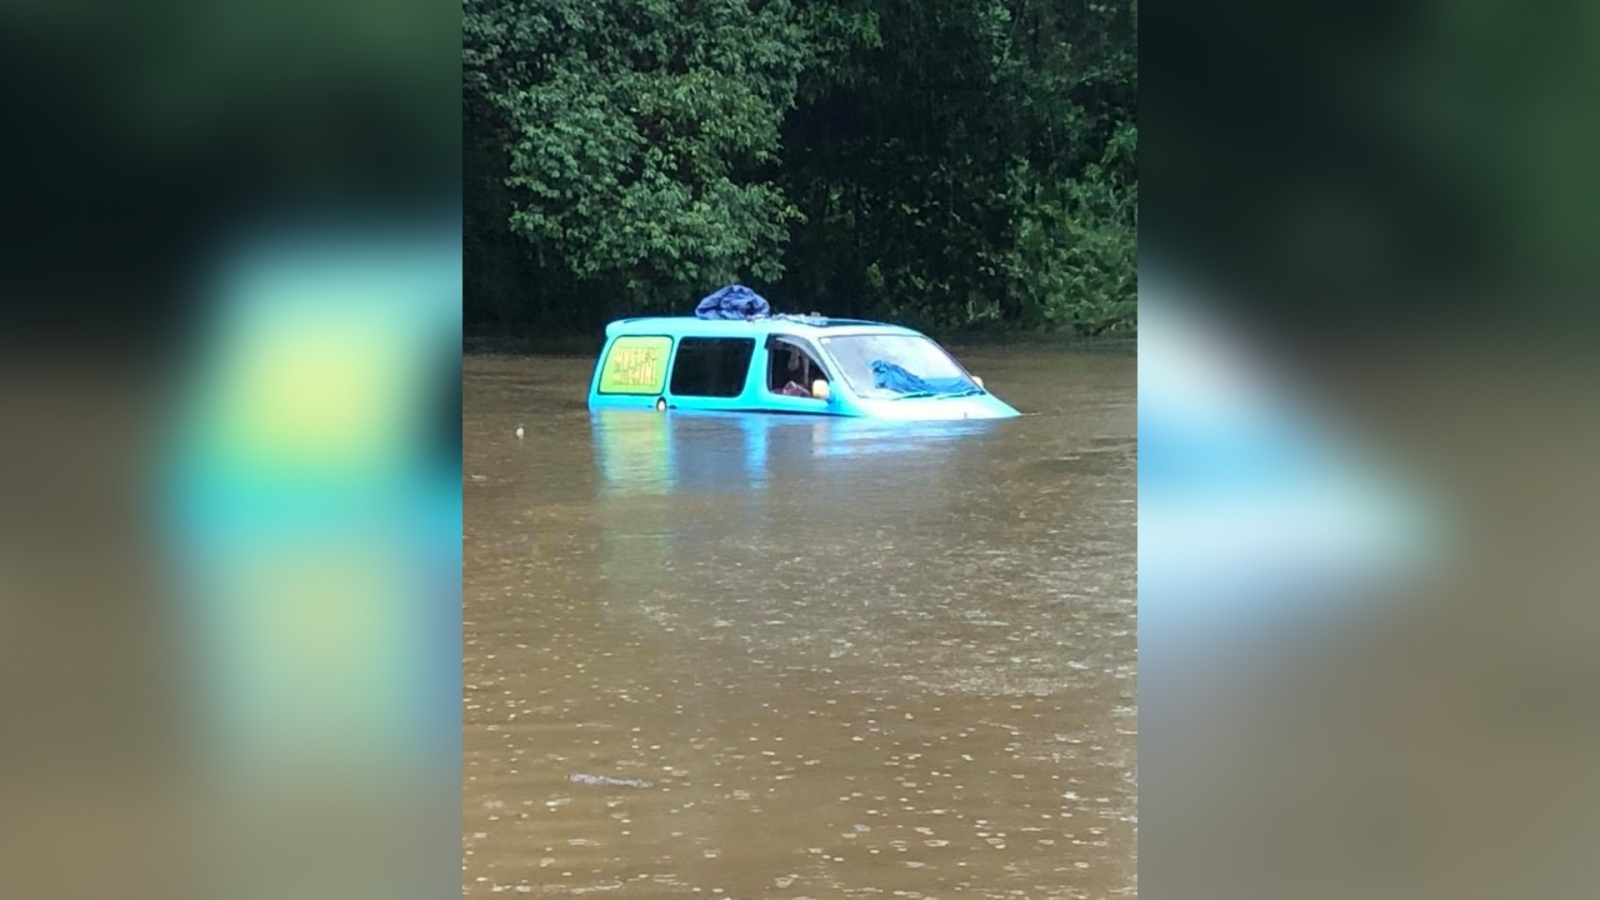 british-backpackers-wake-up-to-find-van-partially-submerged-by-floodwaters